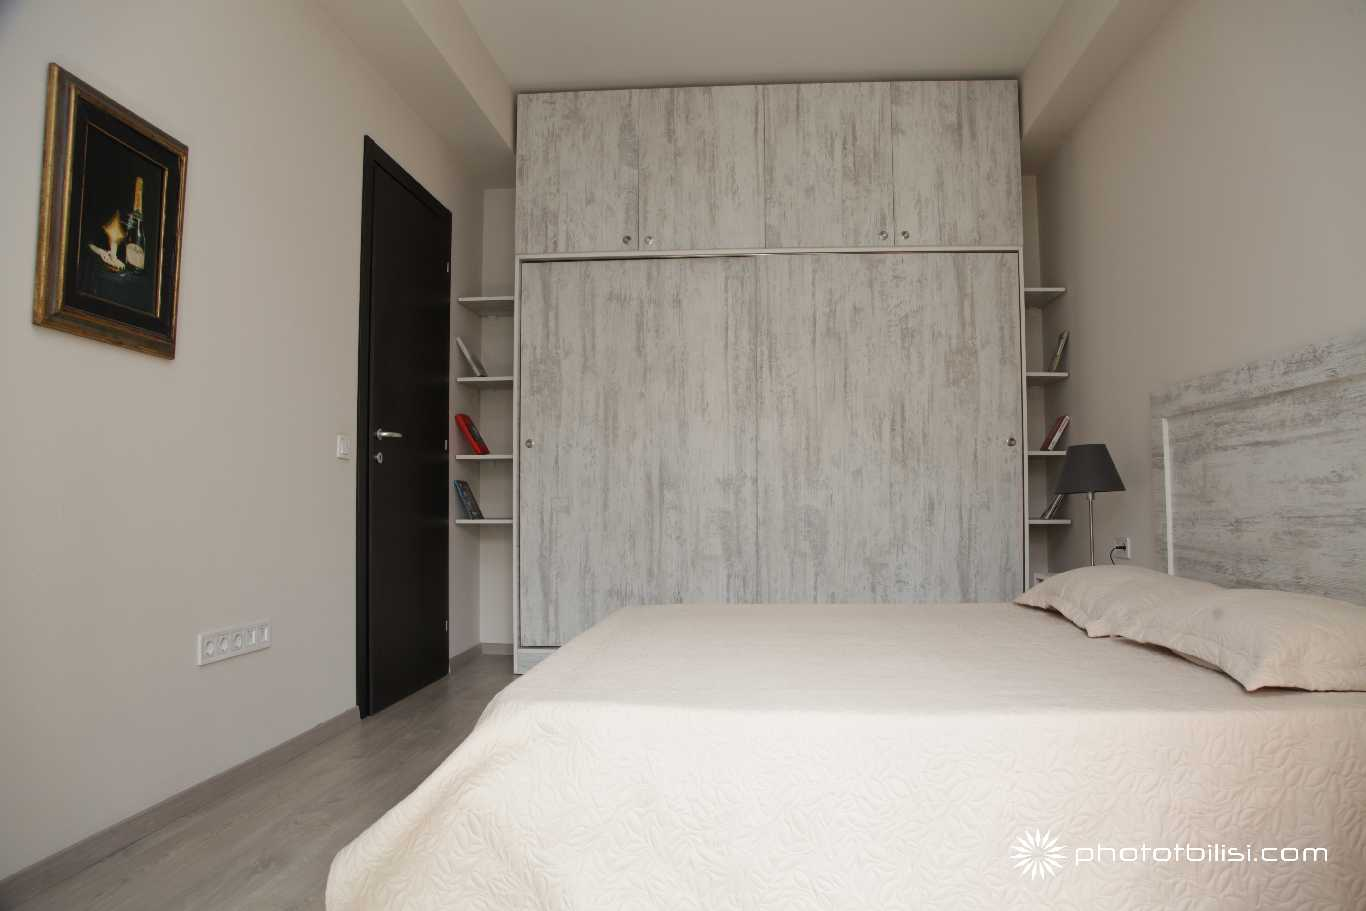 Rent-appartment-in-Tbilisi-IMG_0800